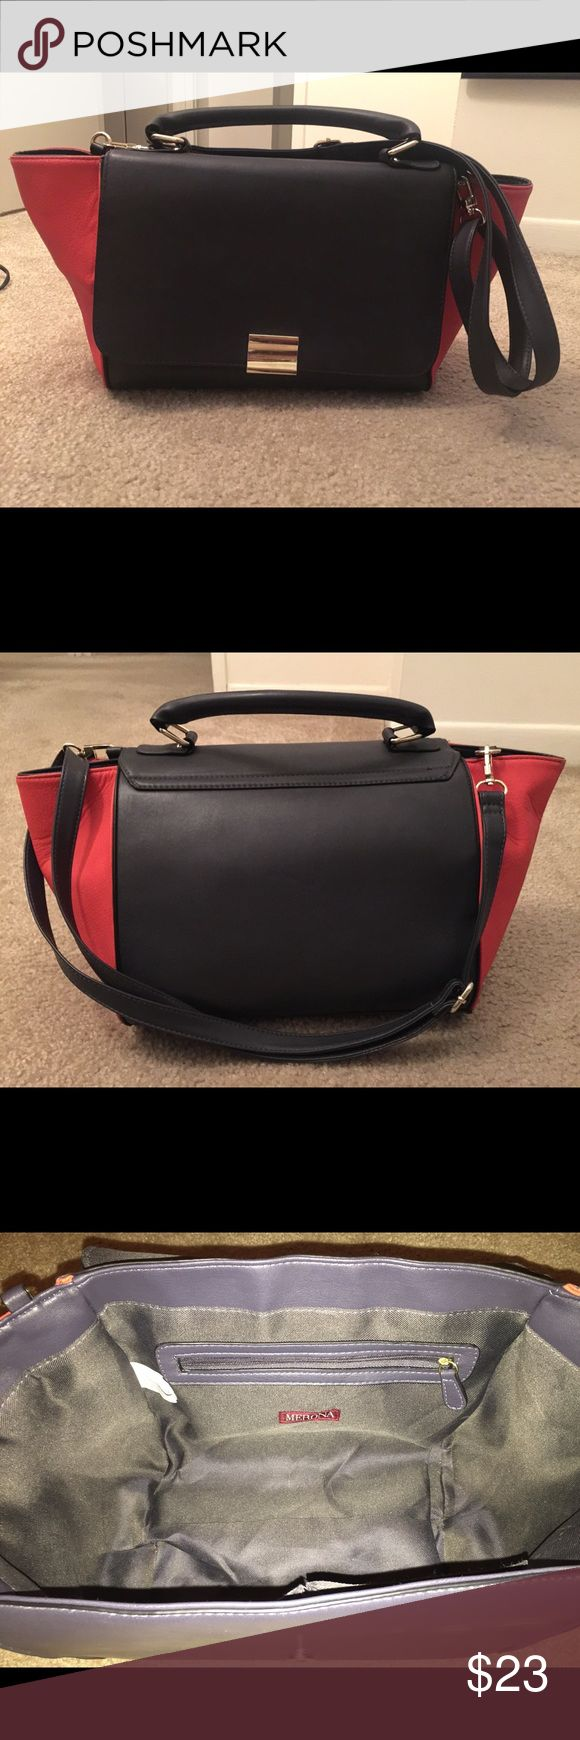 Merona color block purse Orange/coral and deep navy purse. Like new only used once or twice! Measures 11 in W, 7 in D, 7 in H. Merona Bags